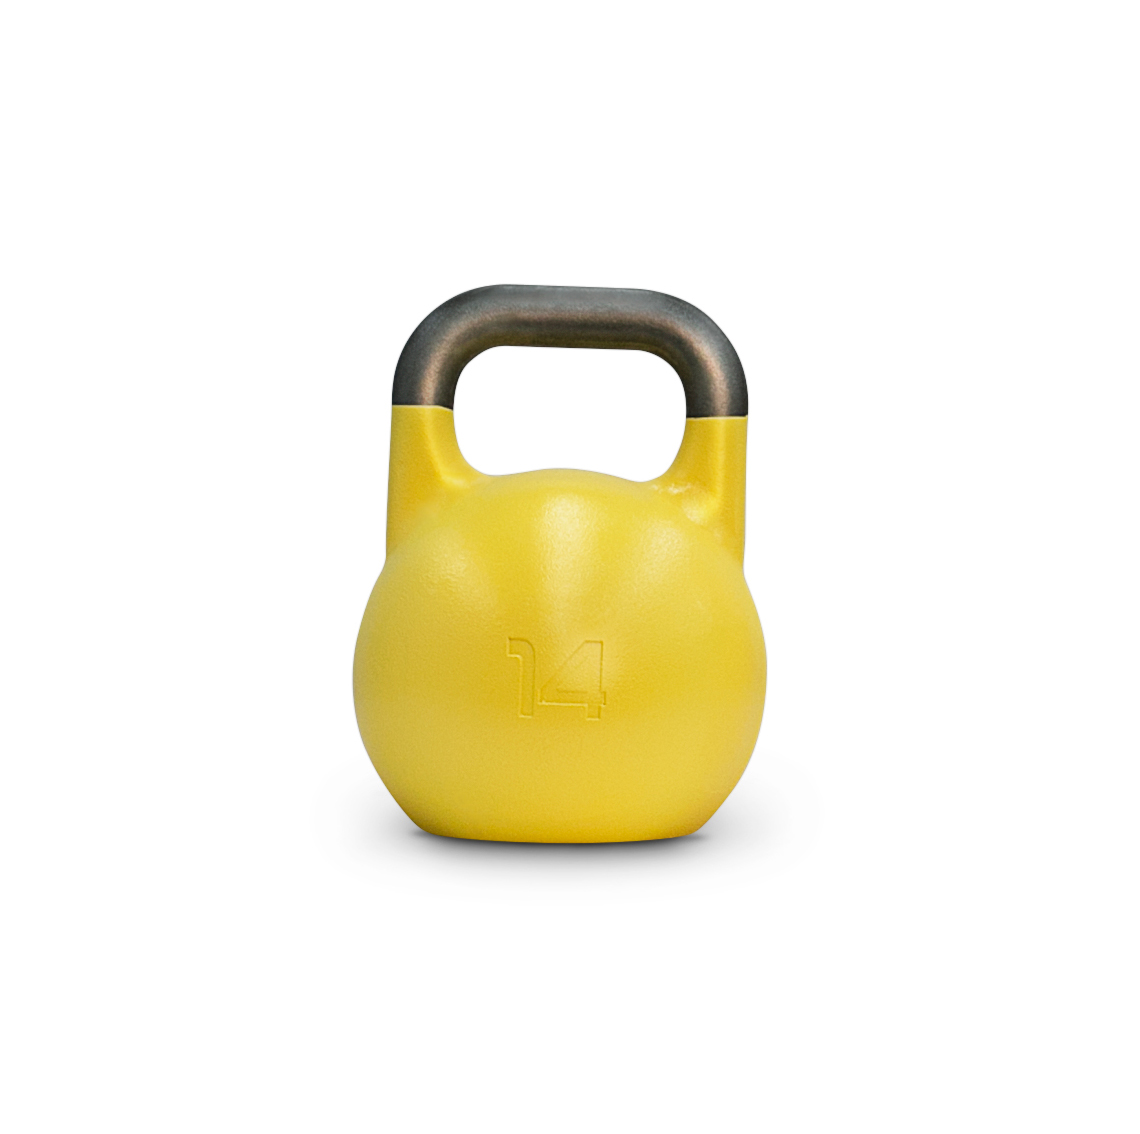 Kettlebell 24kg Professional Competition Grade: Kettlebell PRO Grade 14kg Elite Competition Style